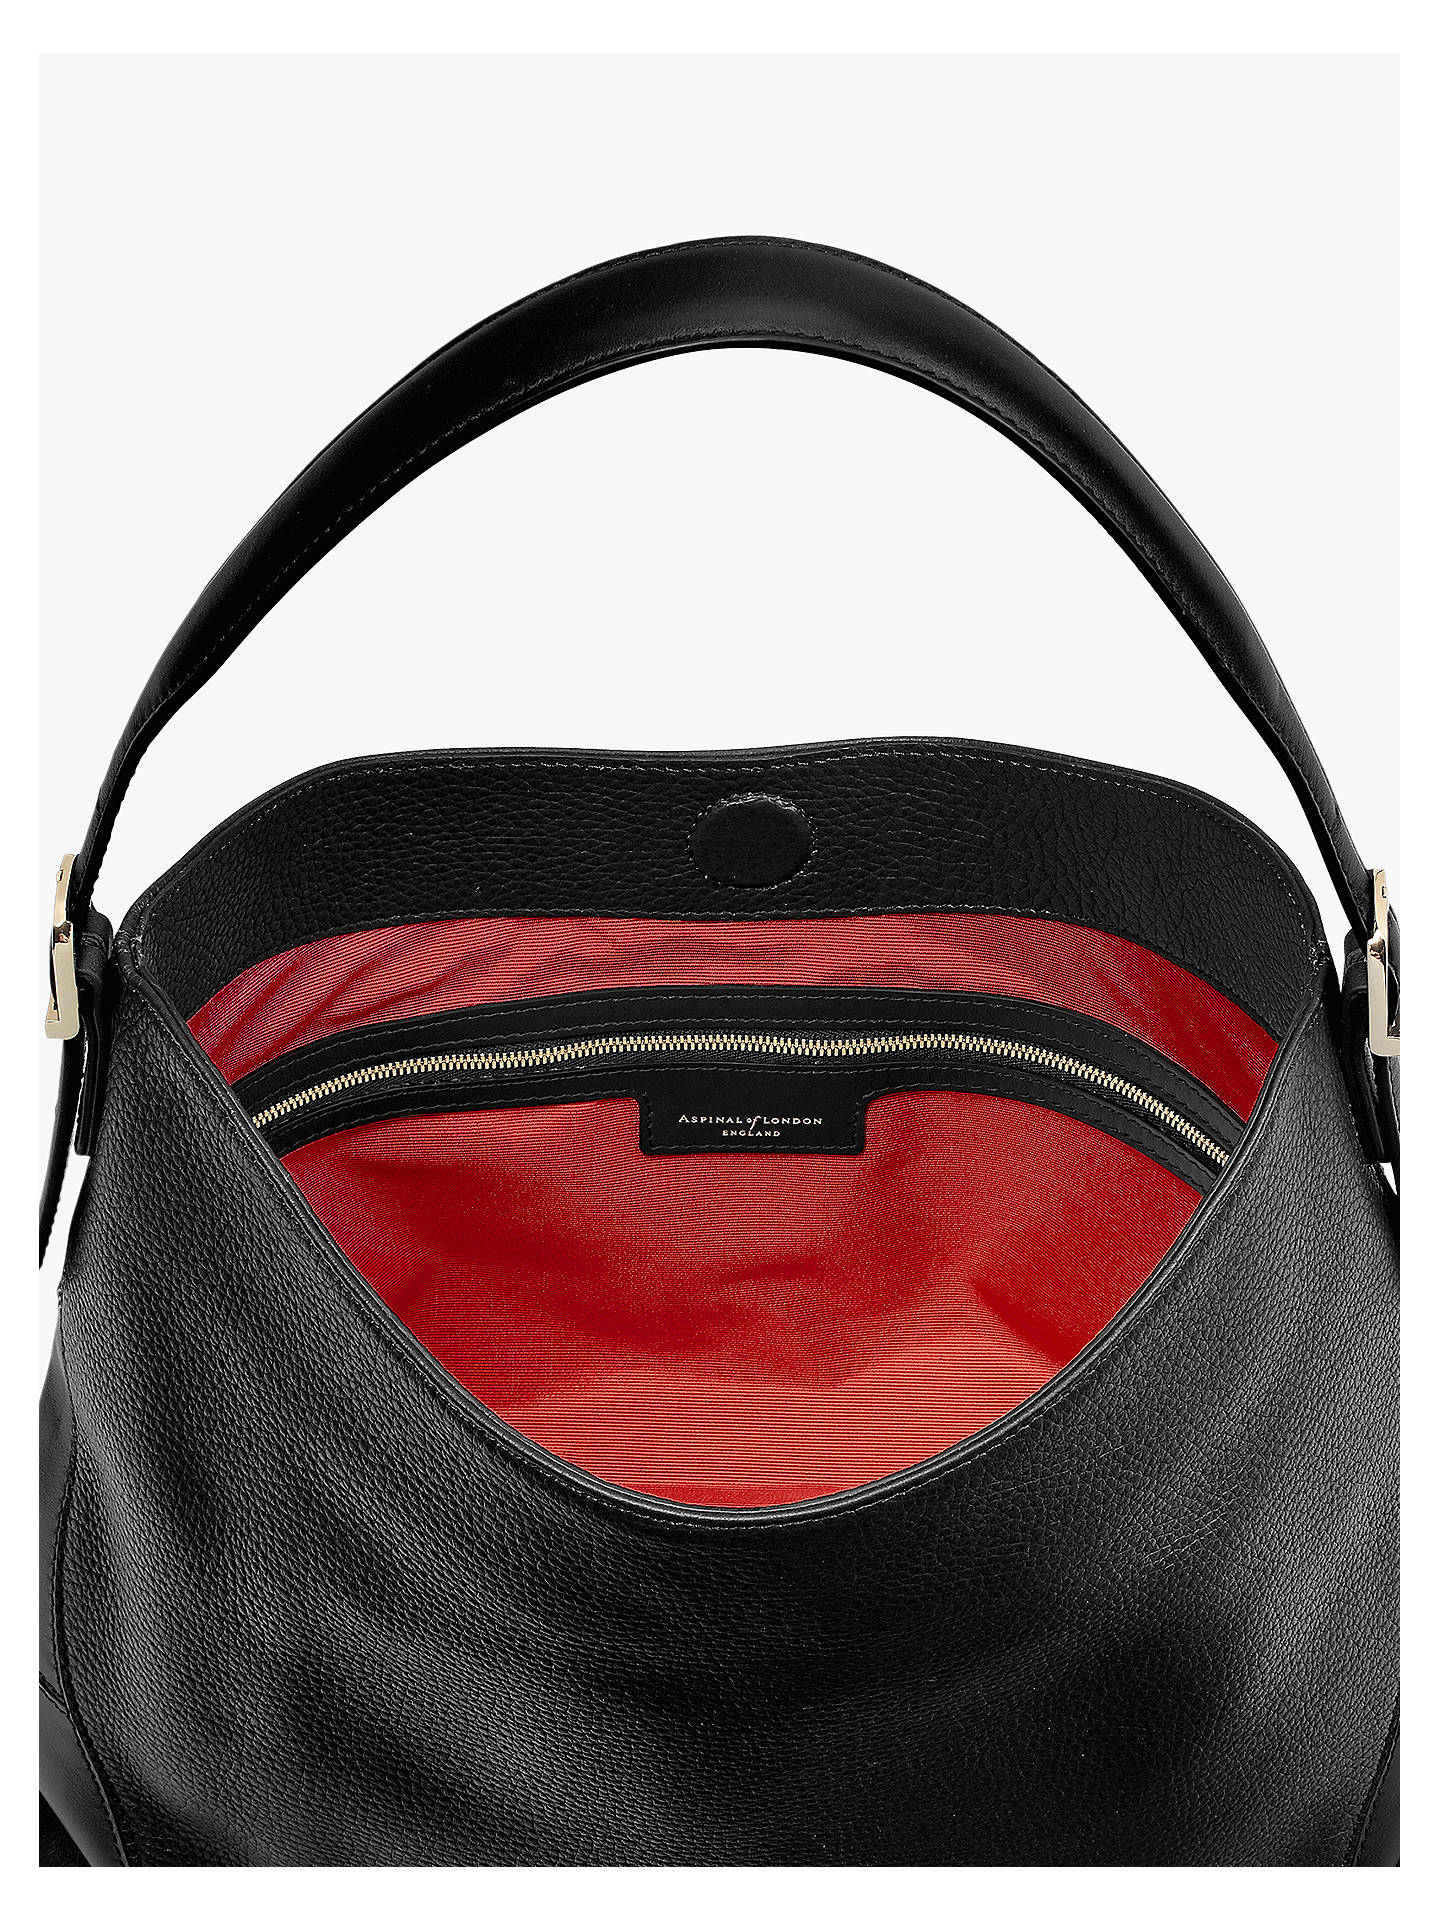 f60a389f008c Aspinal of London Small Leather Hobo Bag at John Lewis   Partners